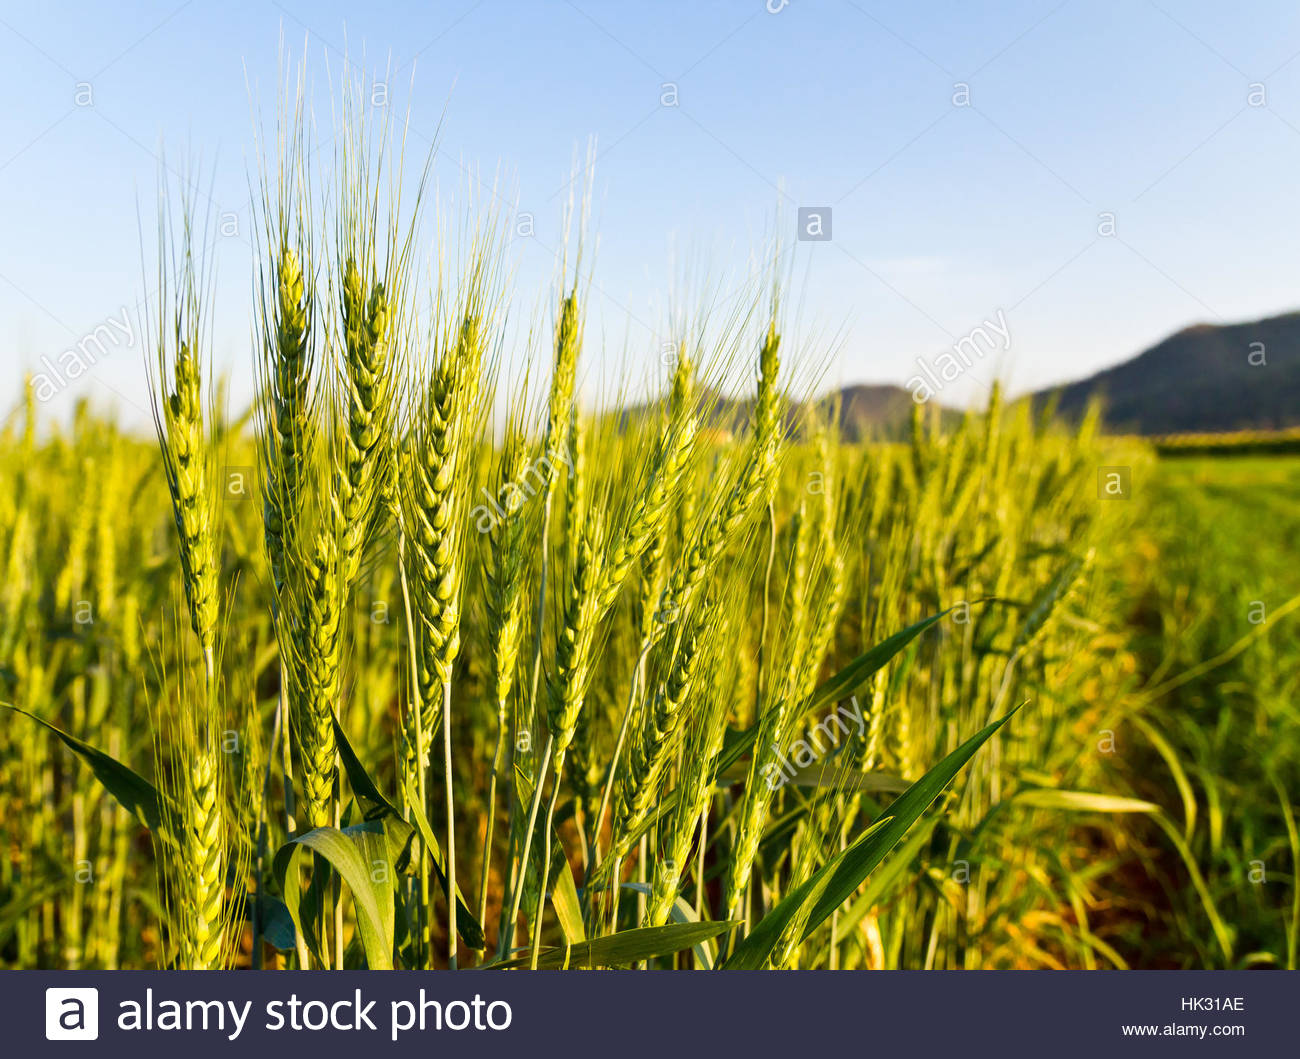 food, aliment, bread, agricultural, agriculturally, lifestyle, agriculture,